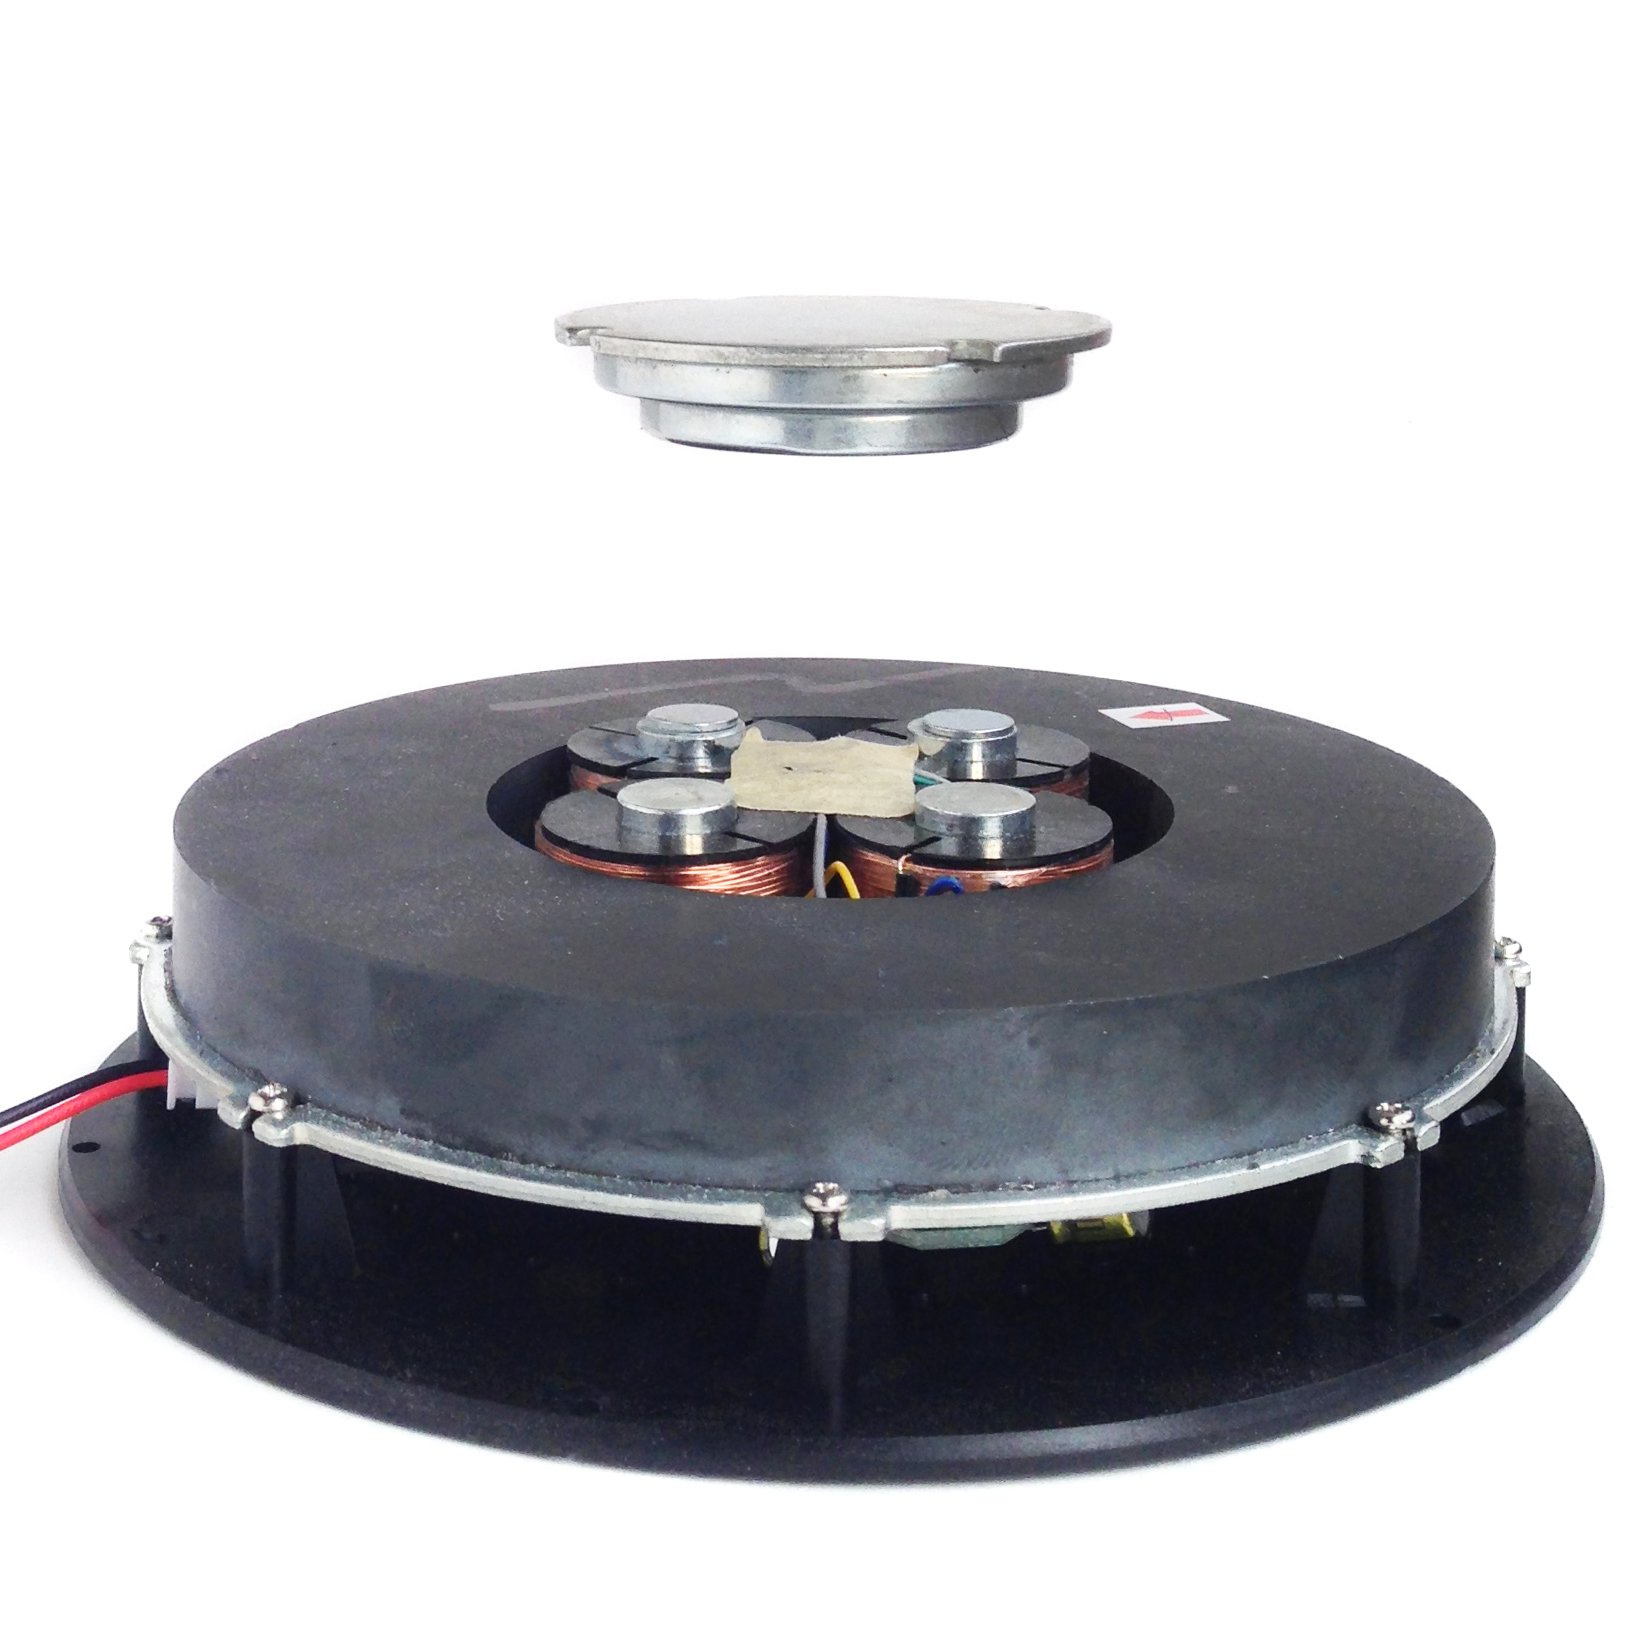 Magnetic Levitation Device Levitating Kit 30mm Levitation Distance by LEVdisplay